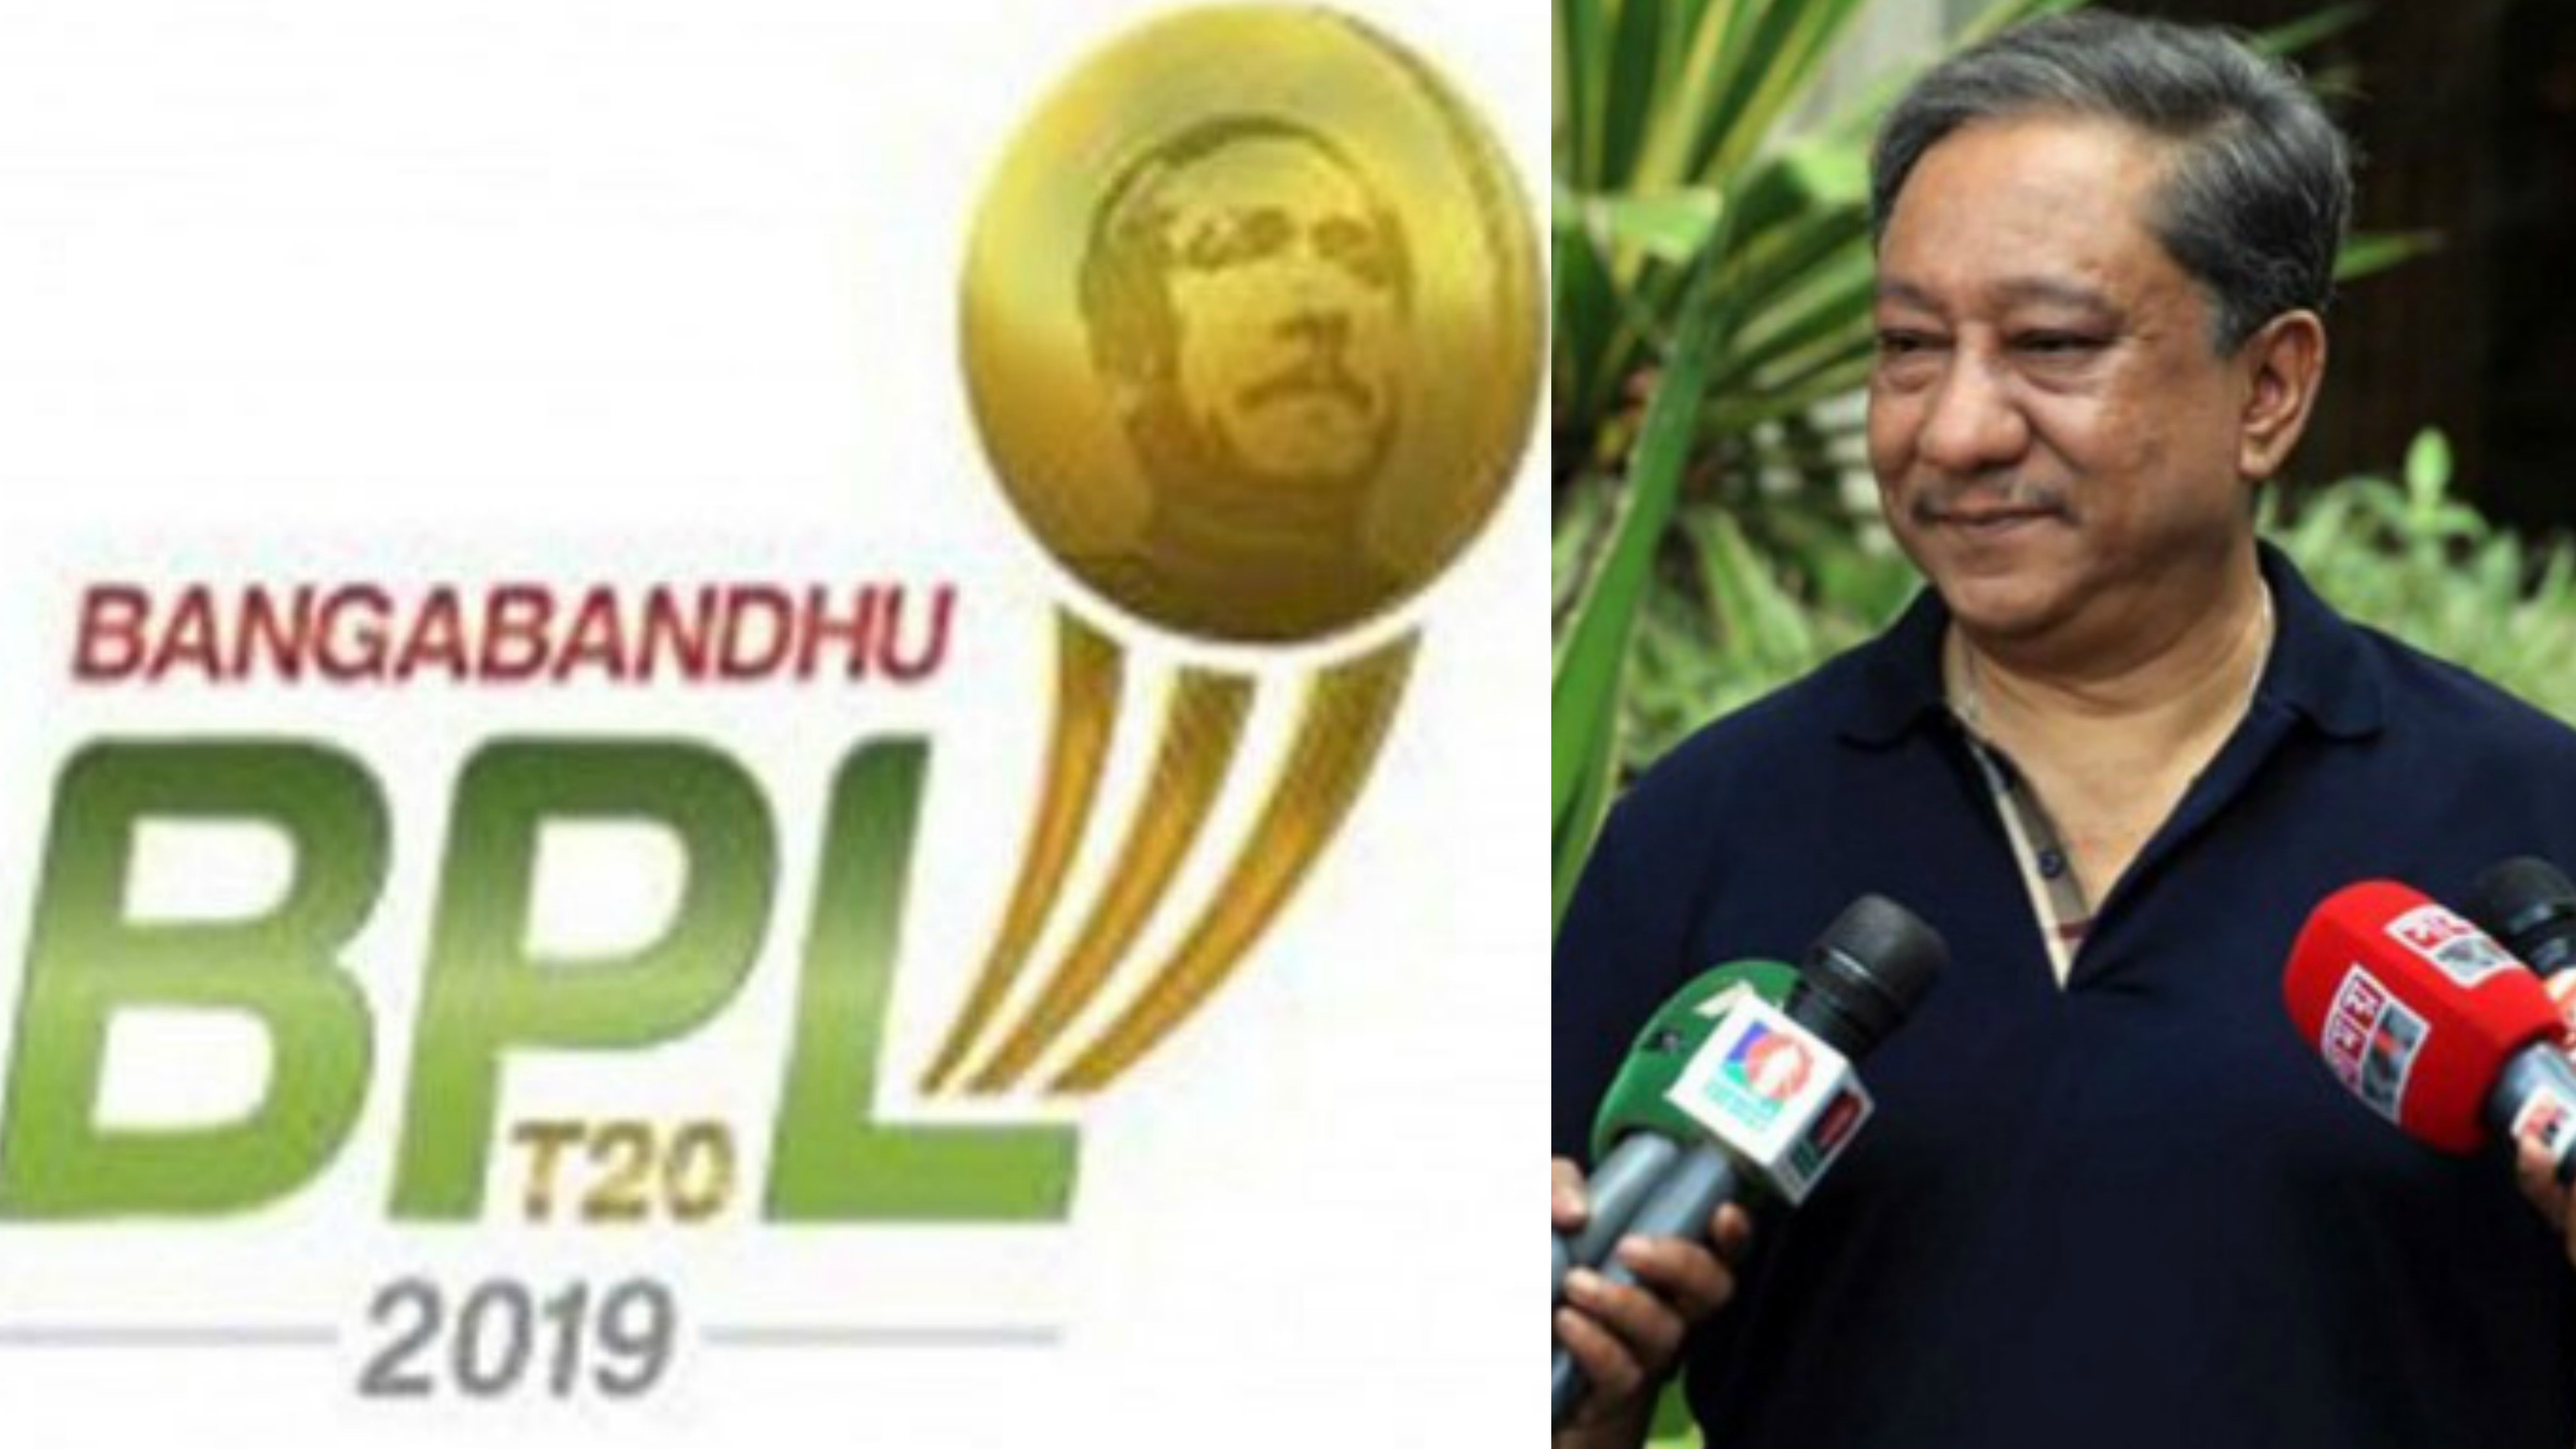 BPL 2019-20: Every team will have anti-corruption officer in the BPL, reveals BCB chief Nazmul